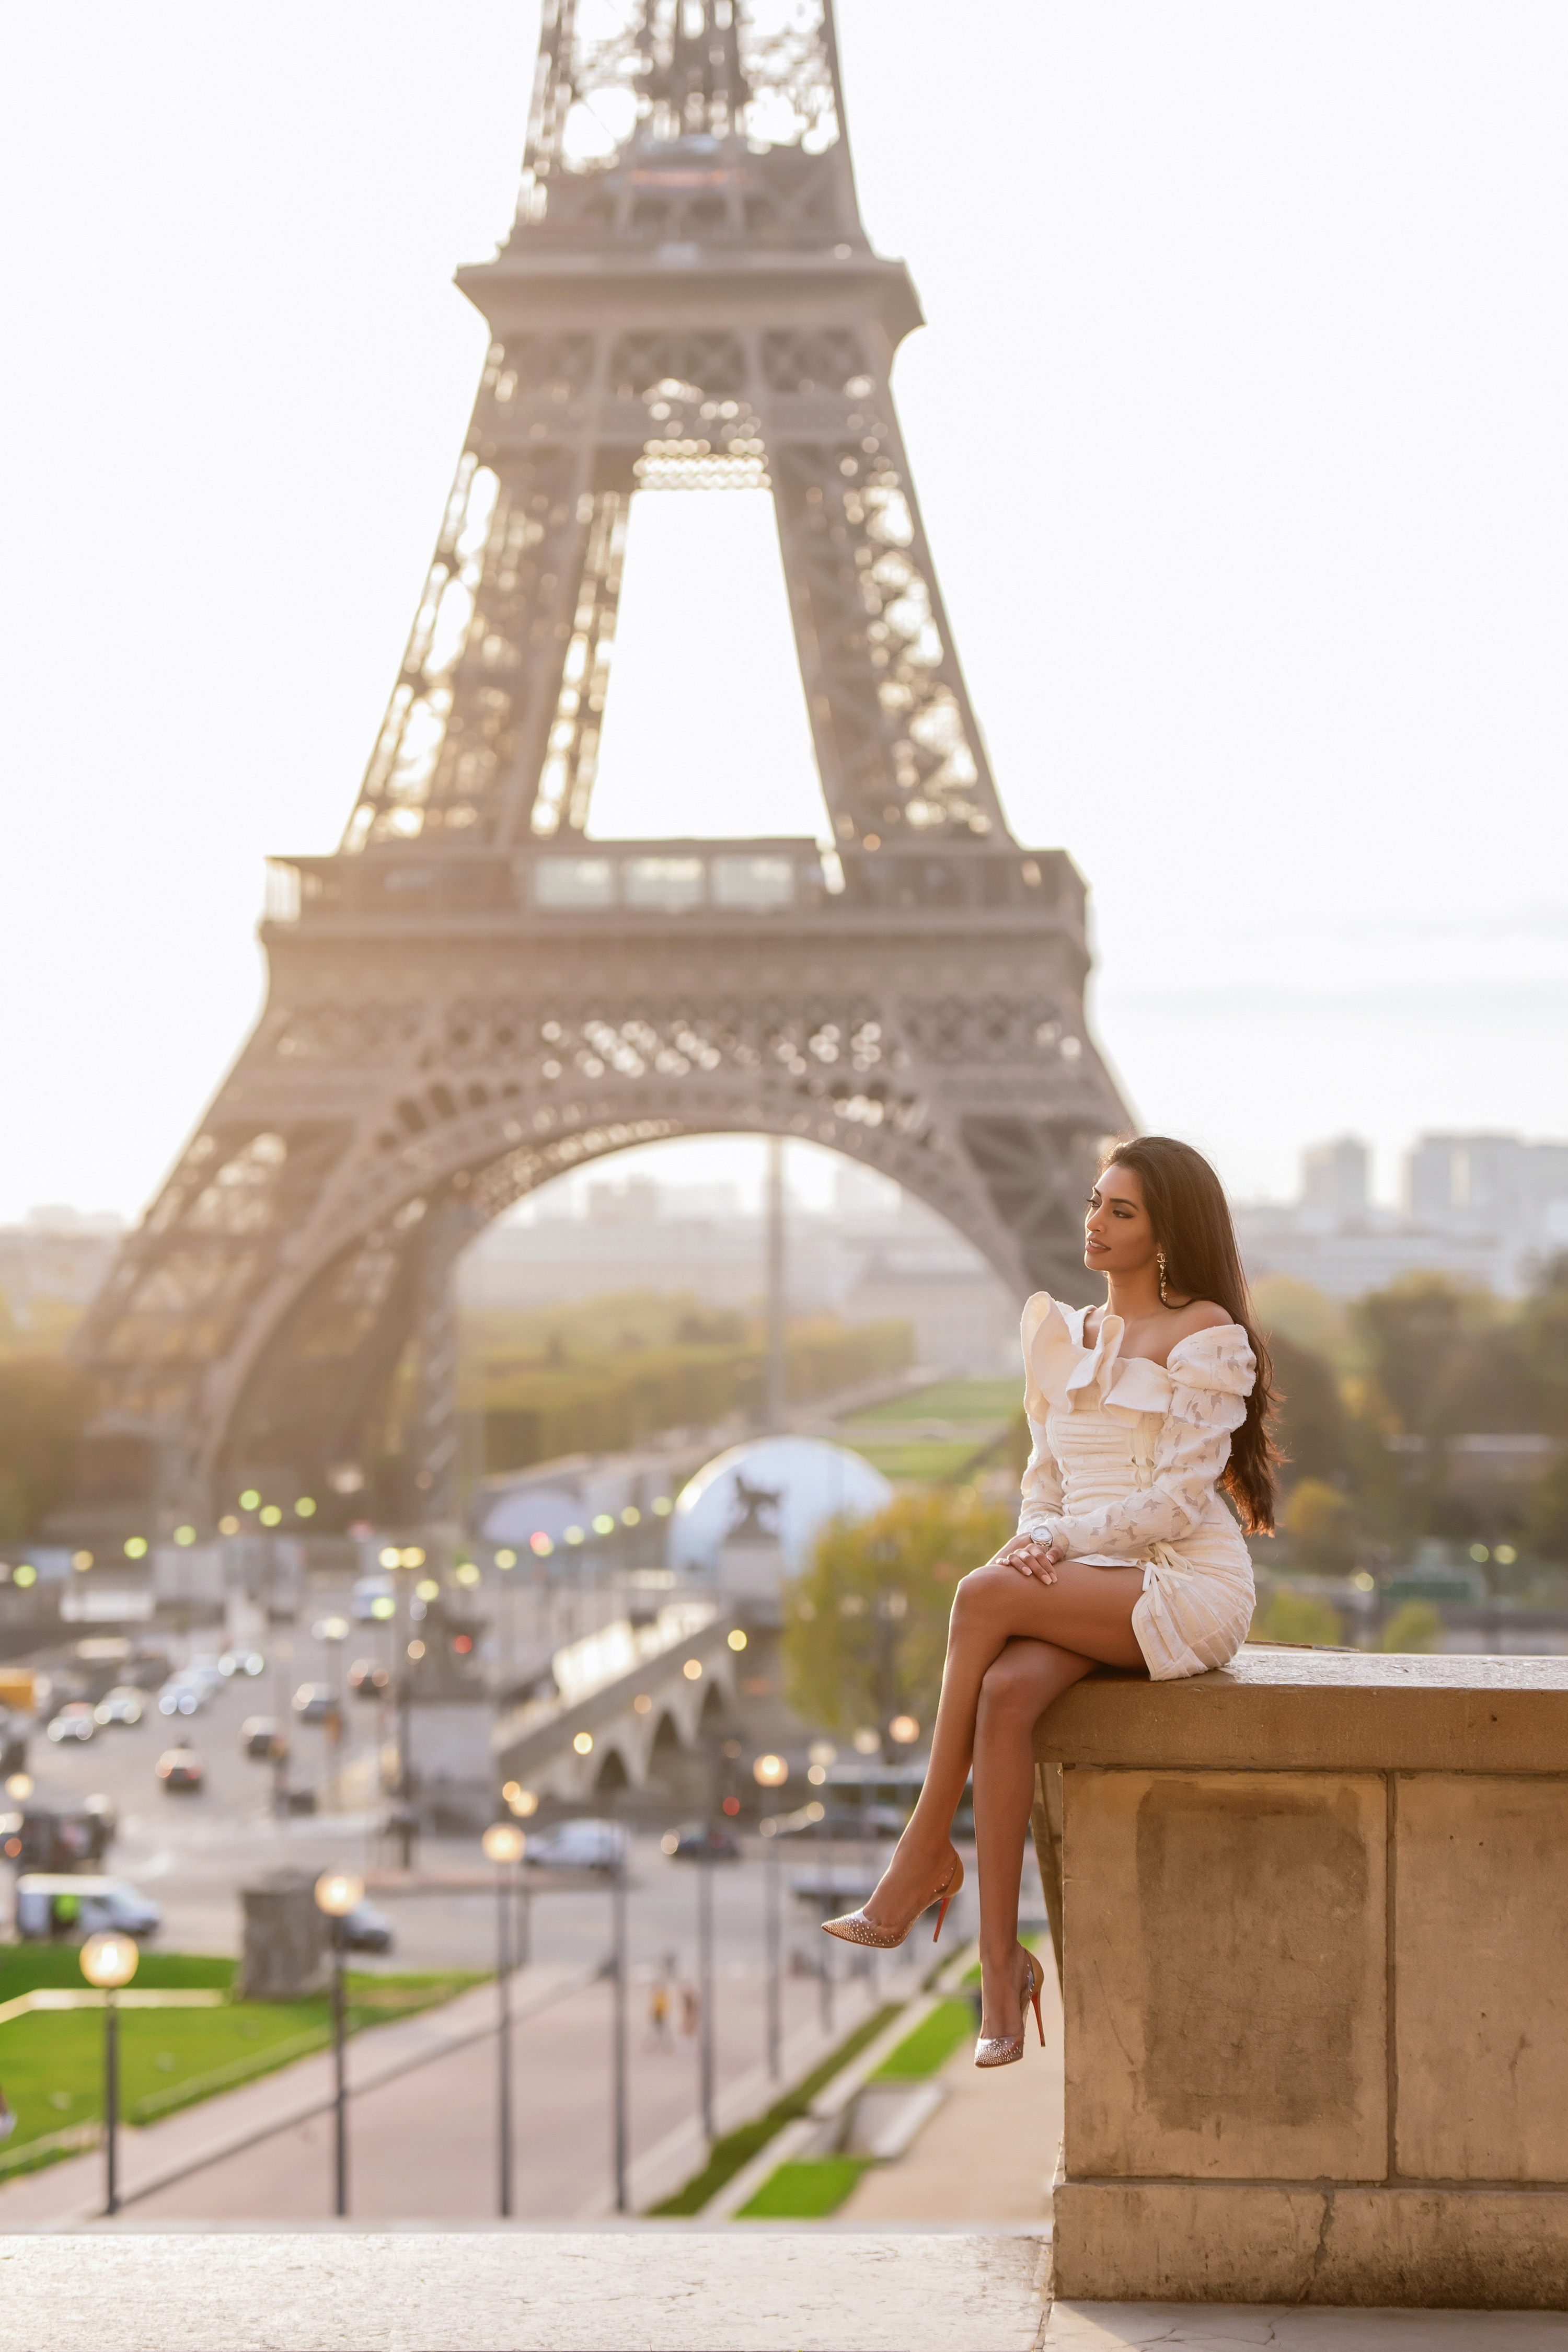 Andrea & Michael's Elegant and Luxurious Elopement in Paris, France, Photography by The Paris Photographer for Luxury Destination Wedding blog Adriana Weddings